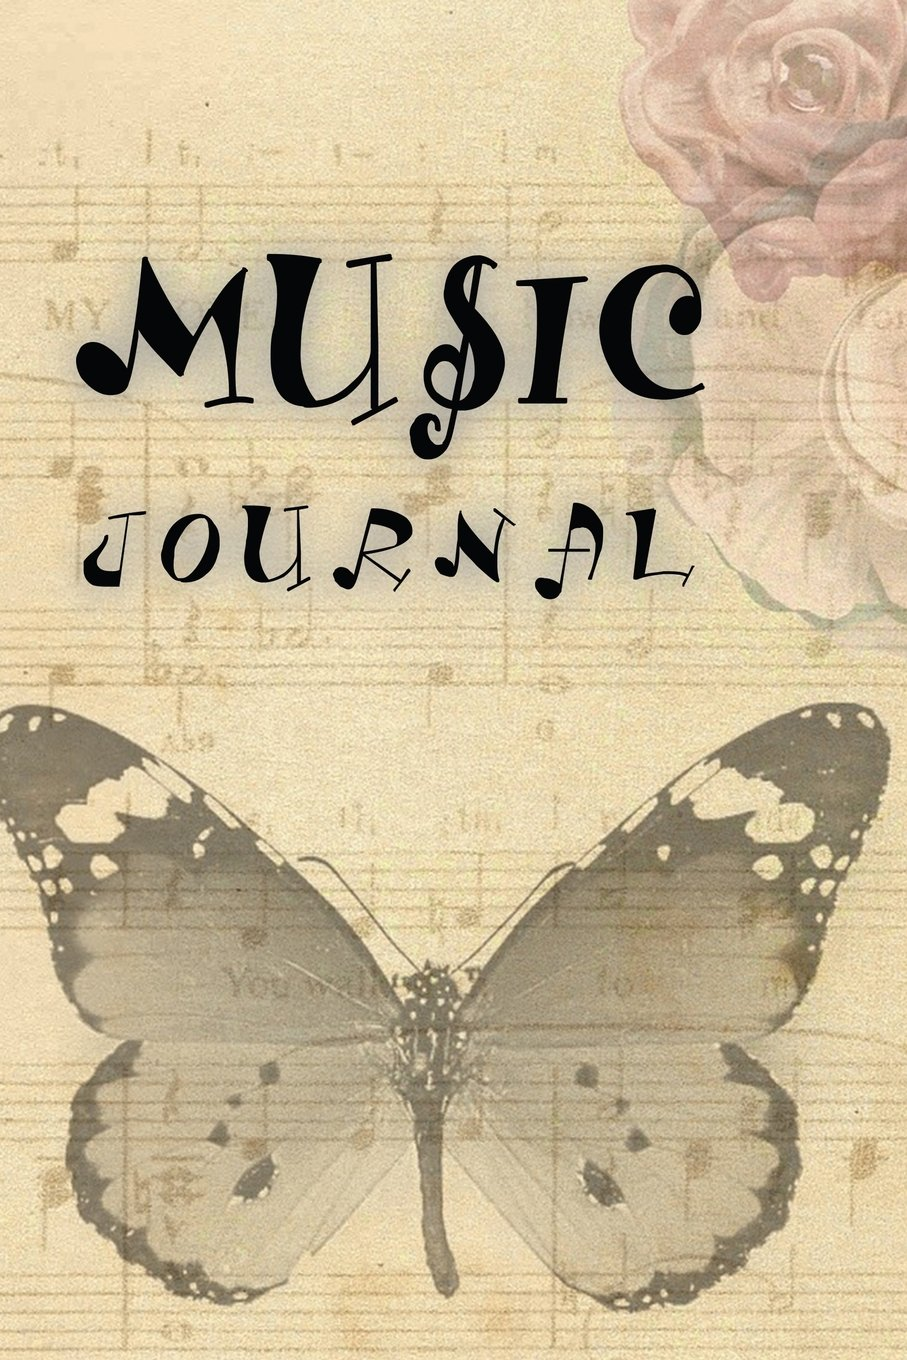 Music Journal: Manuscript Paper For Notes, Lyrics And Music. Lyric Diary and Manuscript Paper for Songwriters and Musicians.For Inspiration And ... 100 Pages 6x9in (Music Journals) (Volume 1)